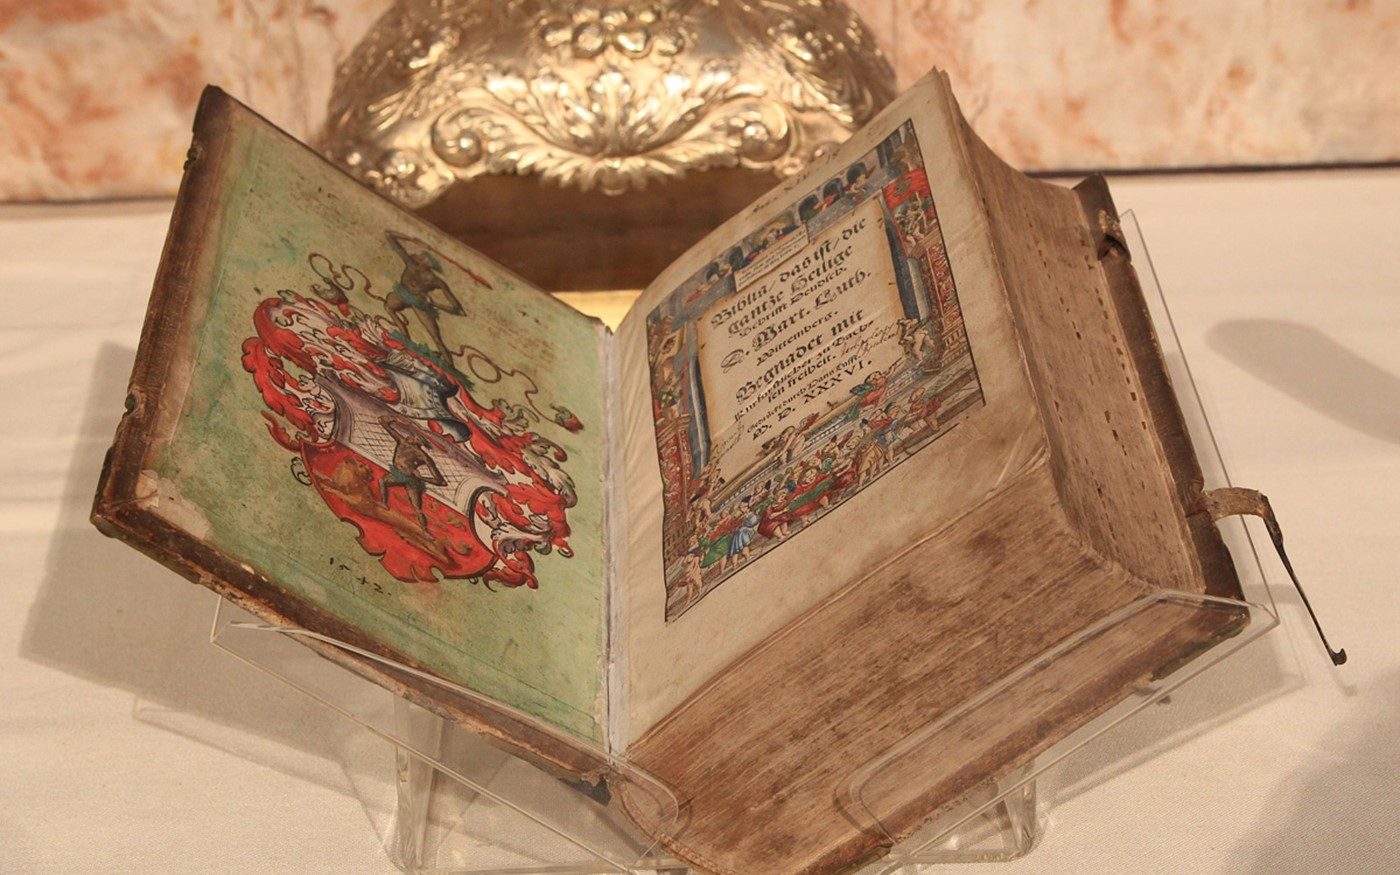 The Luther Bible, part of the Lambeth Palace Library collection, was placed on the High Altar during the service